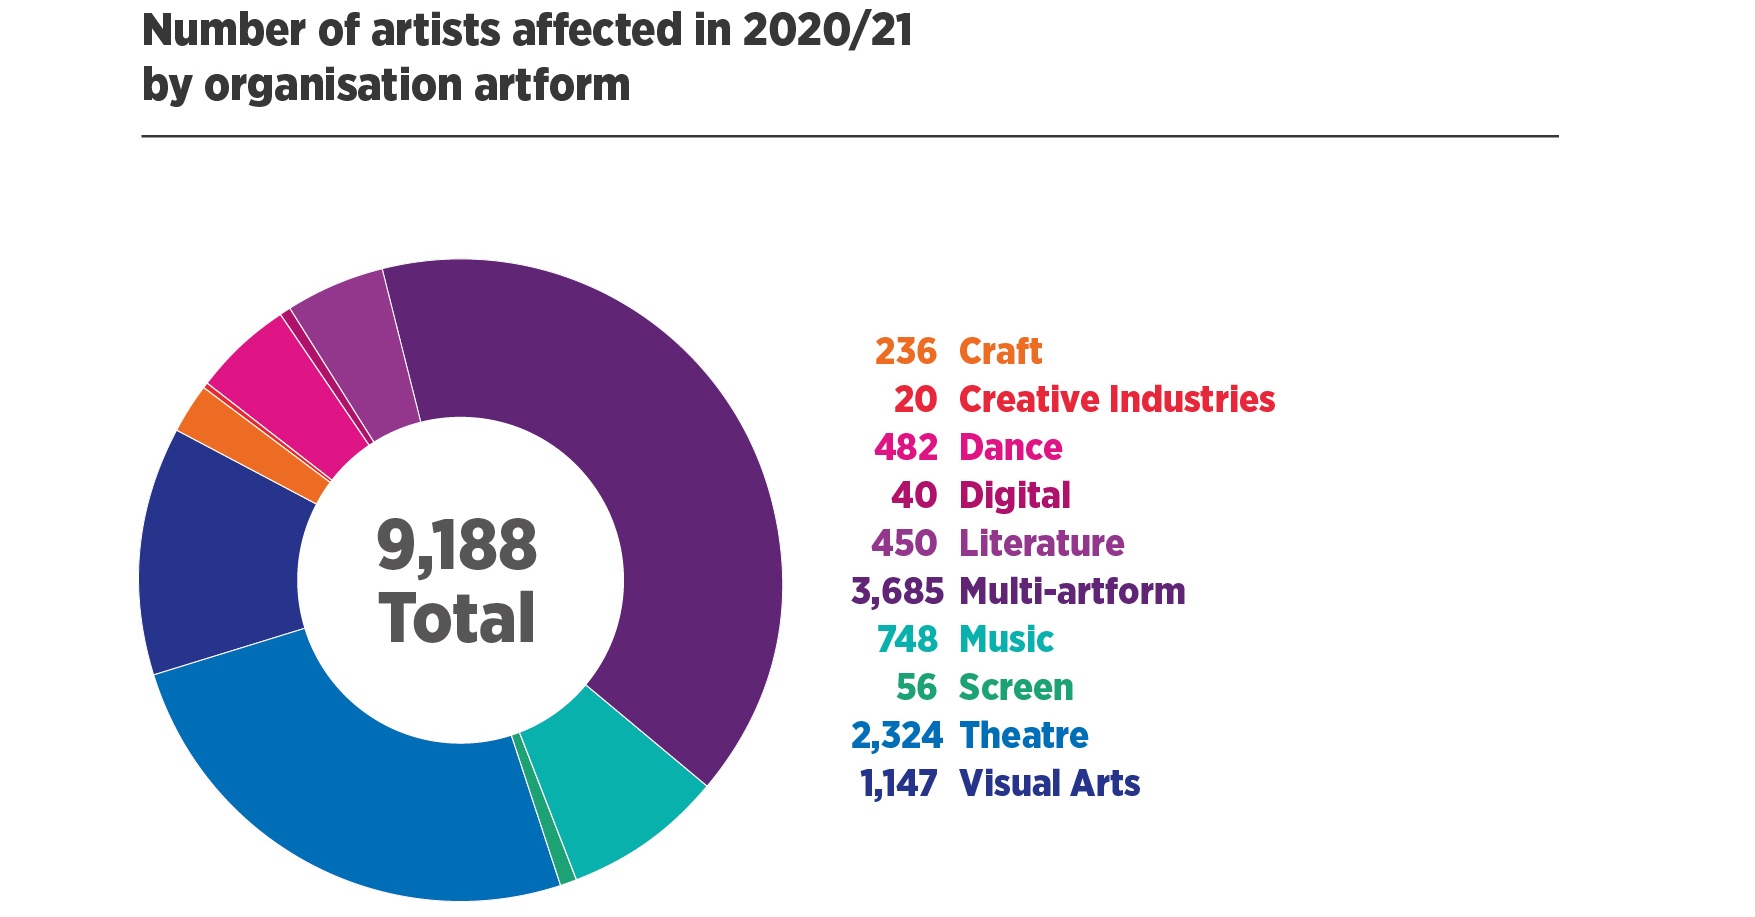 Number of artists affected in 2020/21 by organisation artform   9,188 Total: 236 Craft, 20 Creative Industries, 482 Dance, 40 Digital, 450 Literature, 3,685 Multi-artform, 748 Music, 56 Screen, 2,324 Theatre, 1,147 Visual Arts